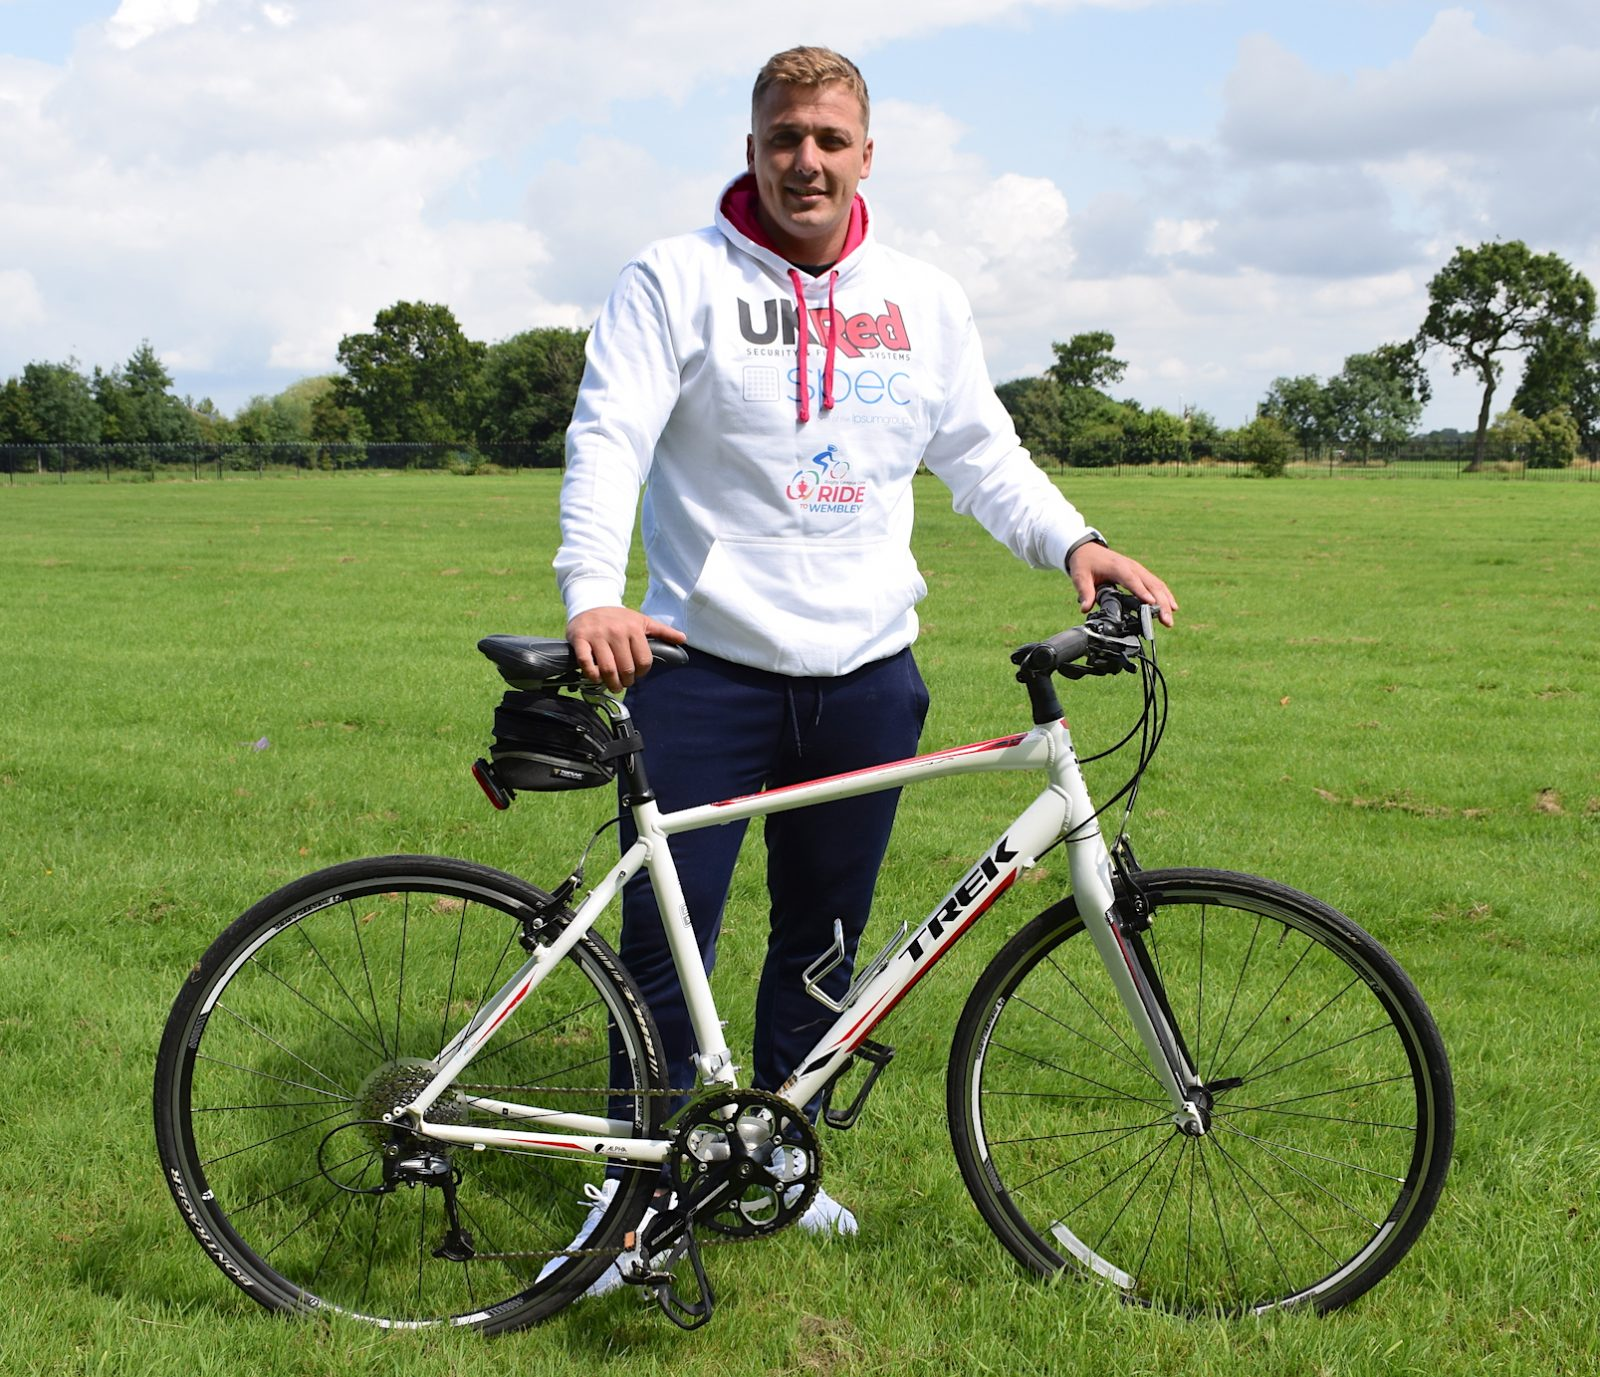 Lee Smith to take on the Ride to Wembley challenge